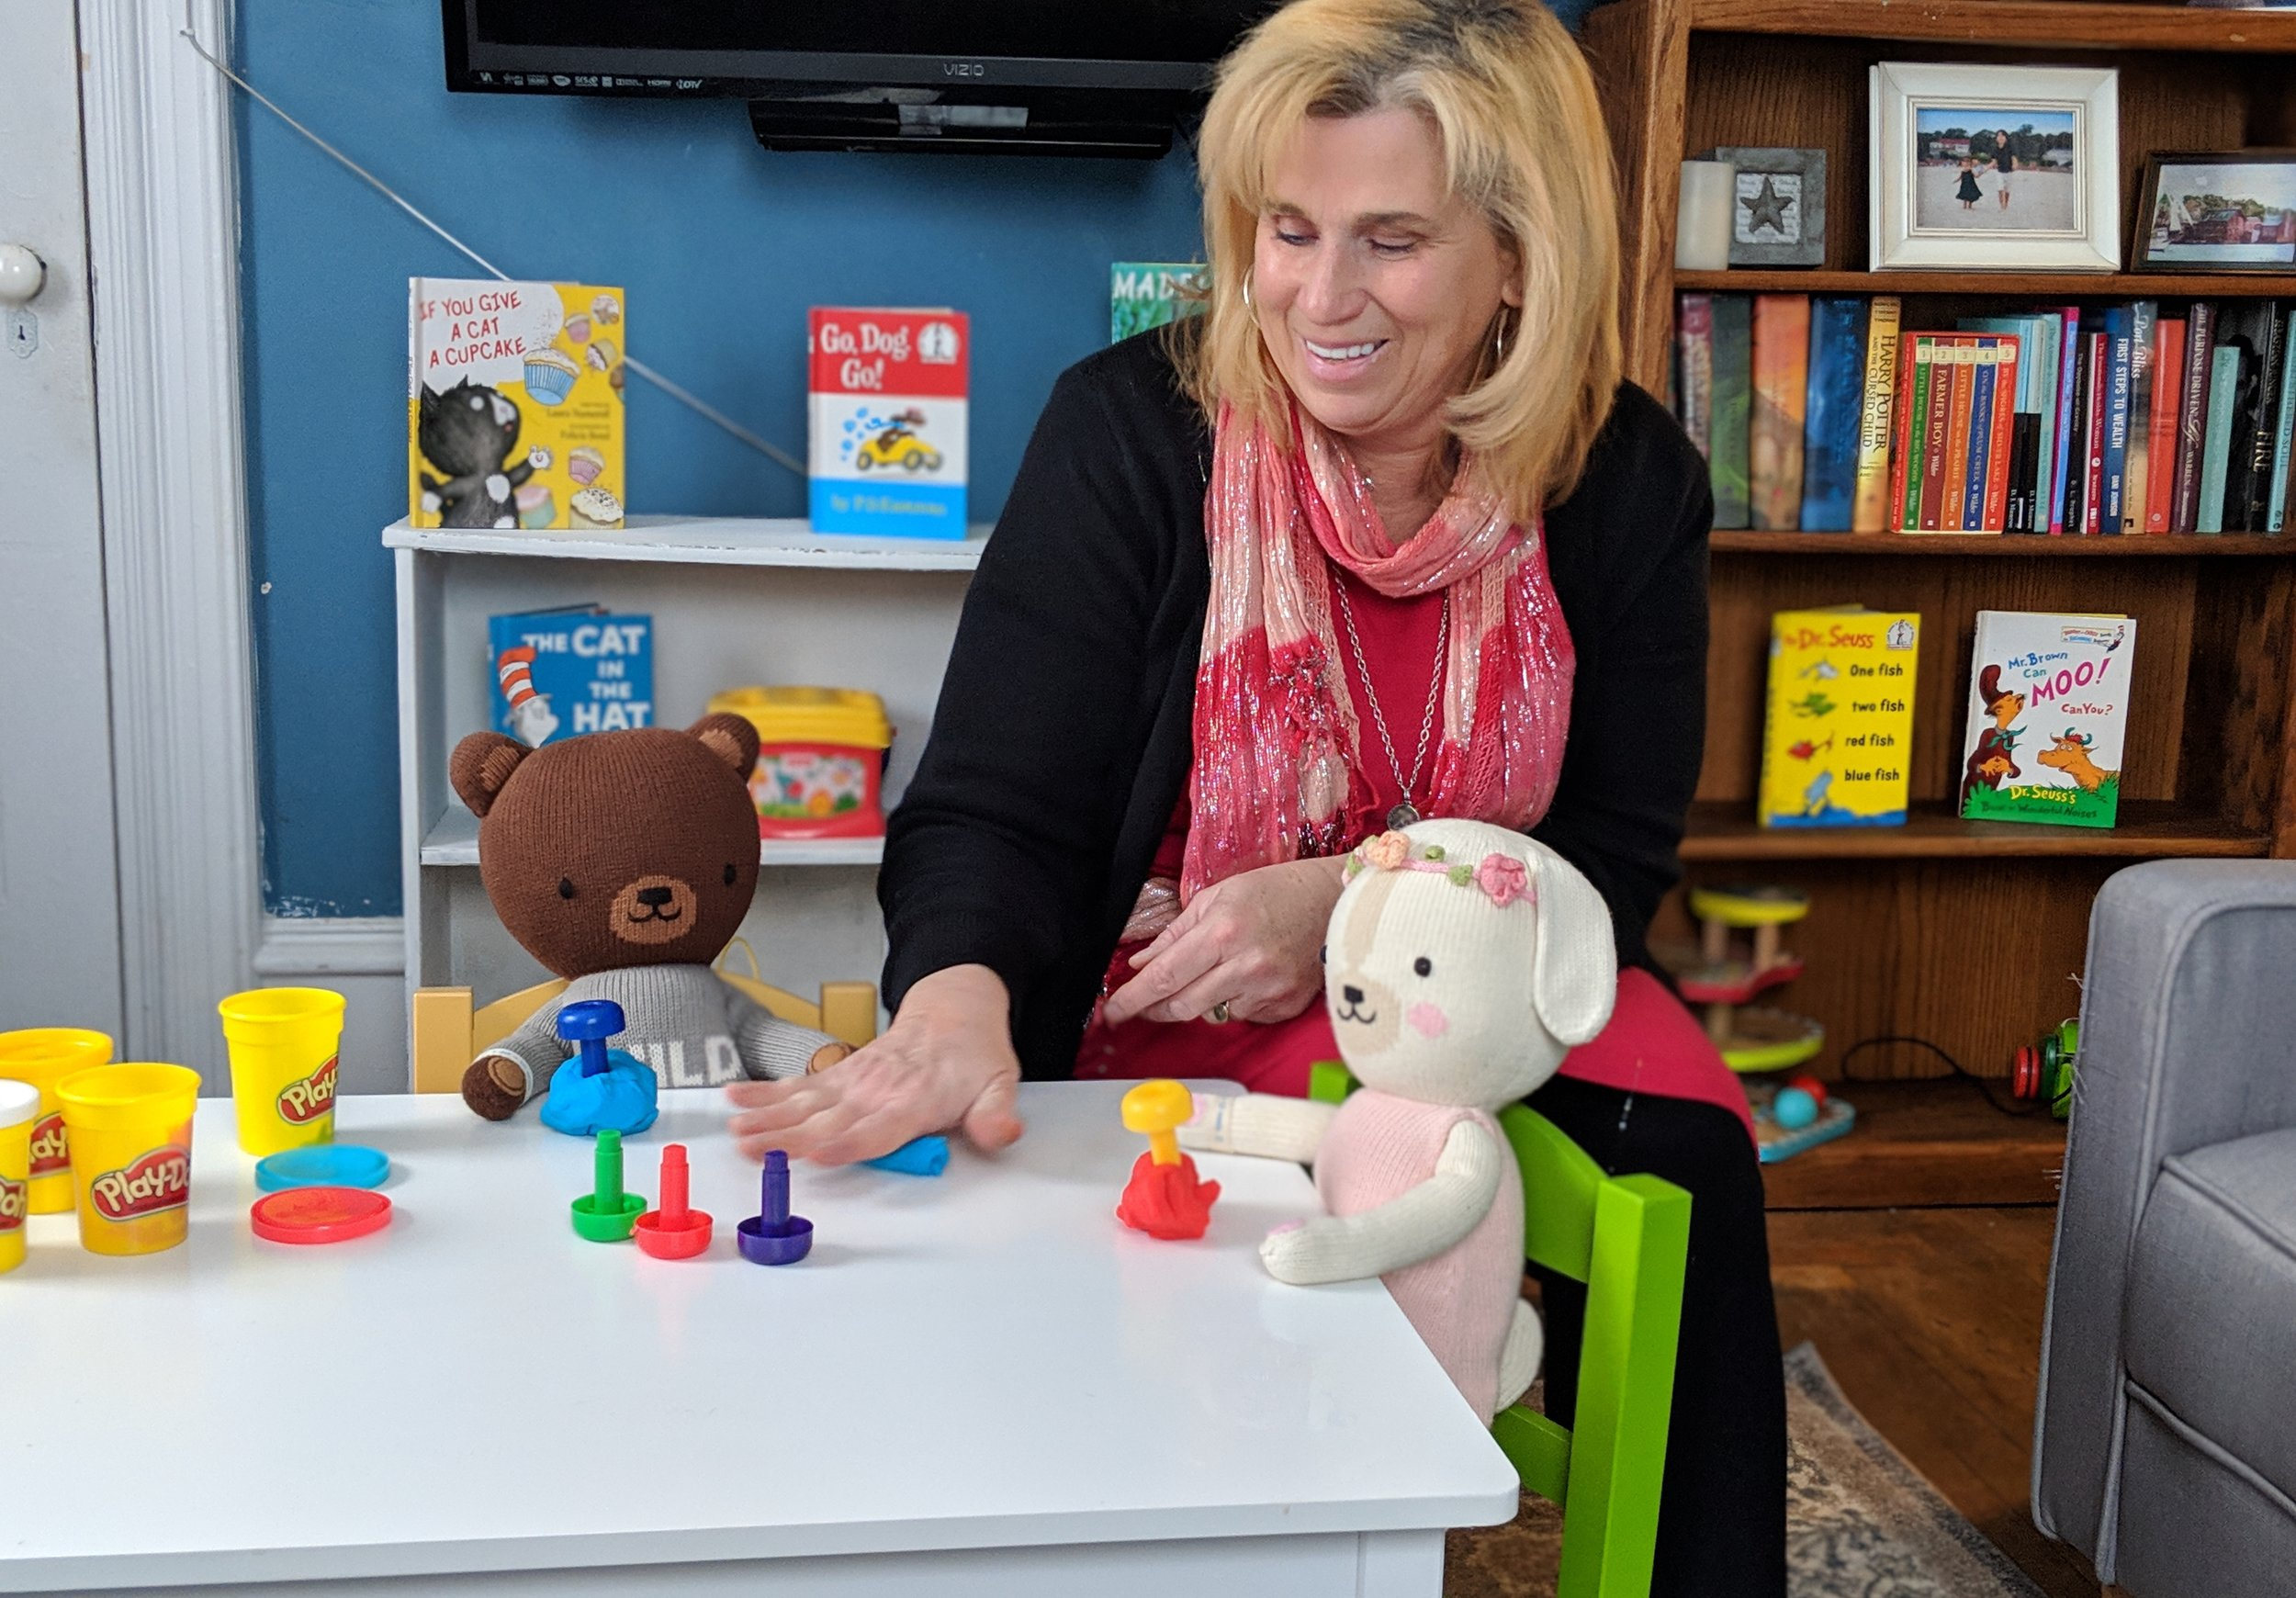 Deb Pacheco, licensed child care provider, will open the Wee Play Infant Toddler Development this spring